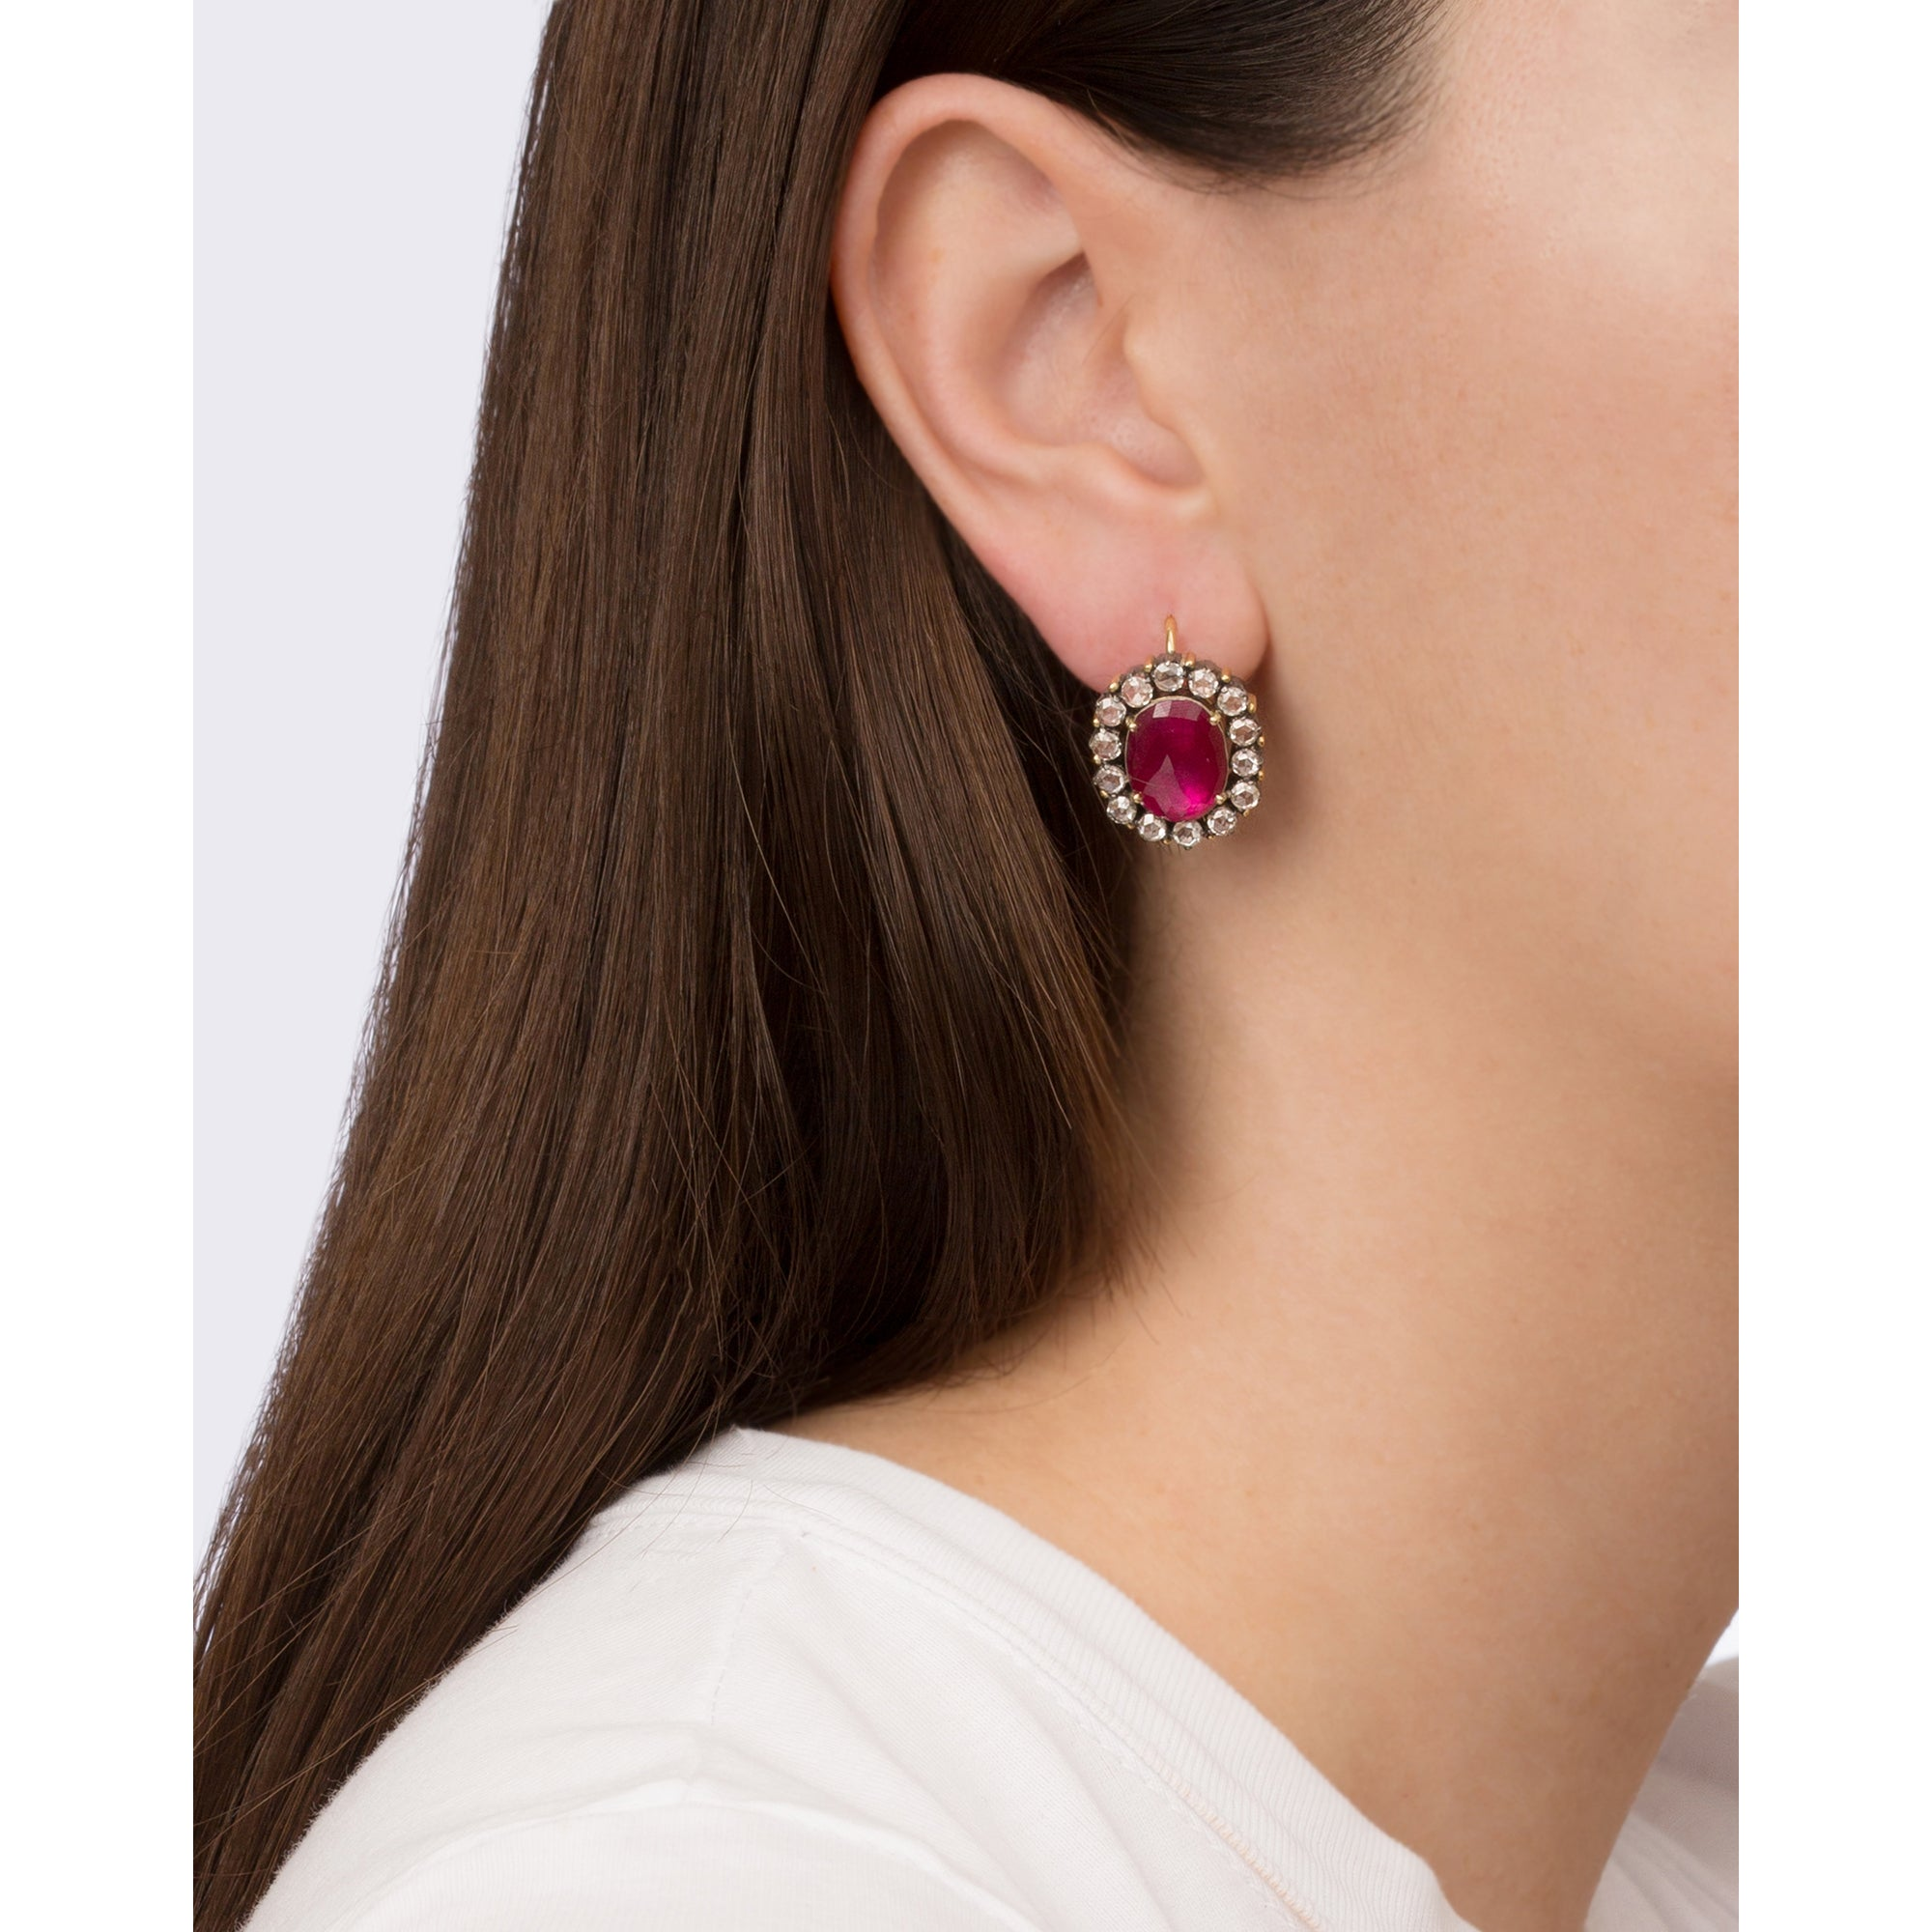 Diamond & Ruby Earrings by Legend Amrapali for Broken English Jewelry